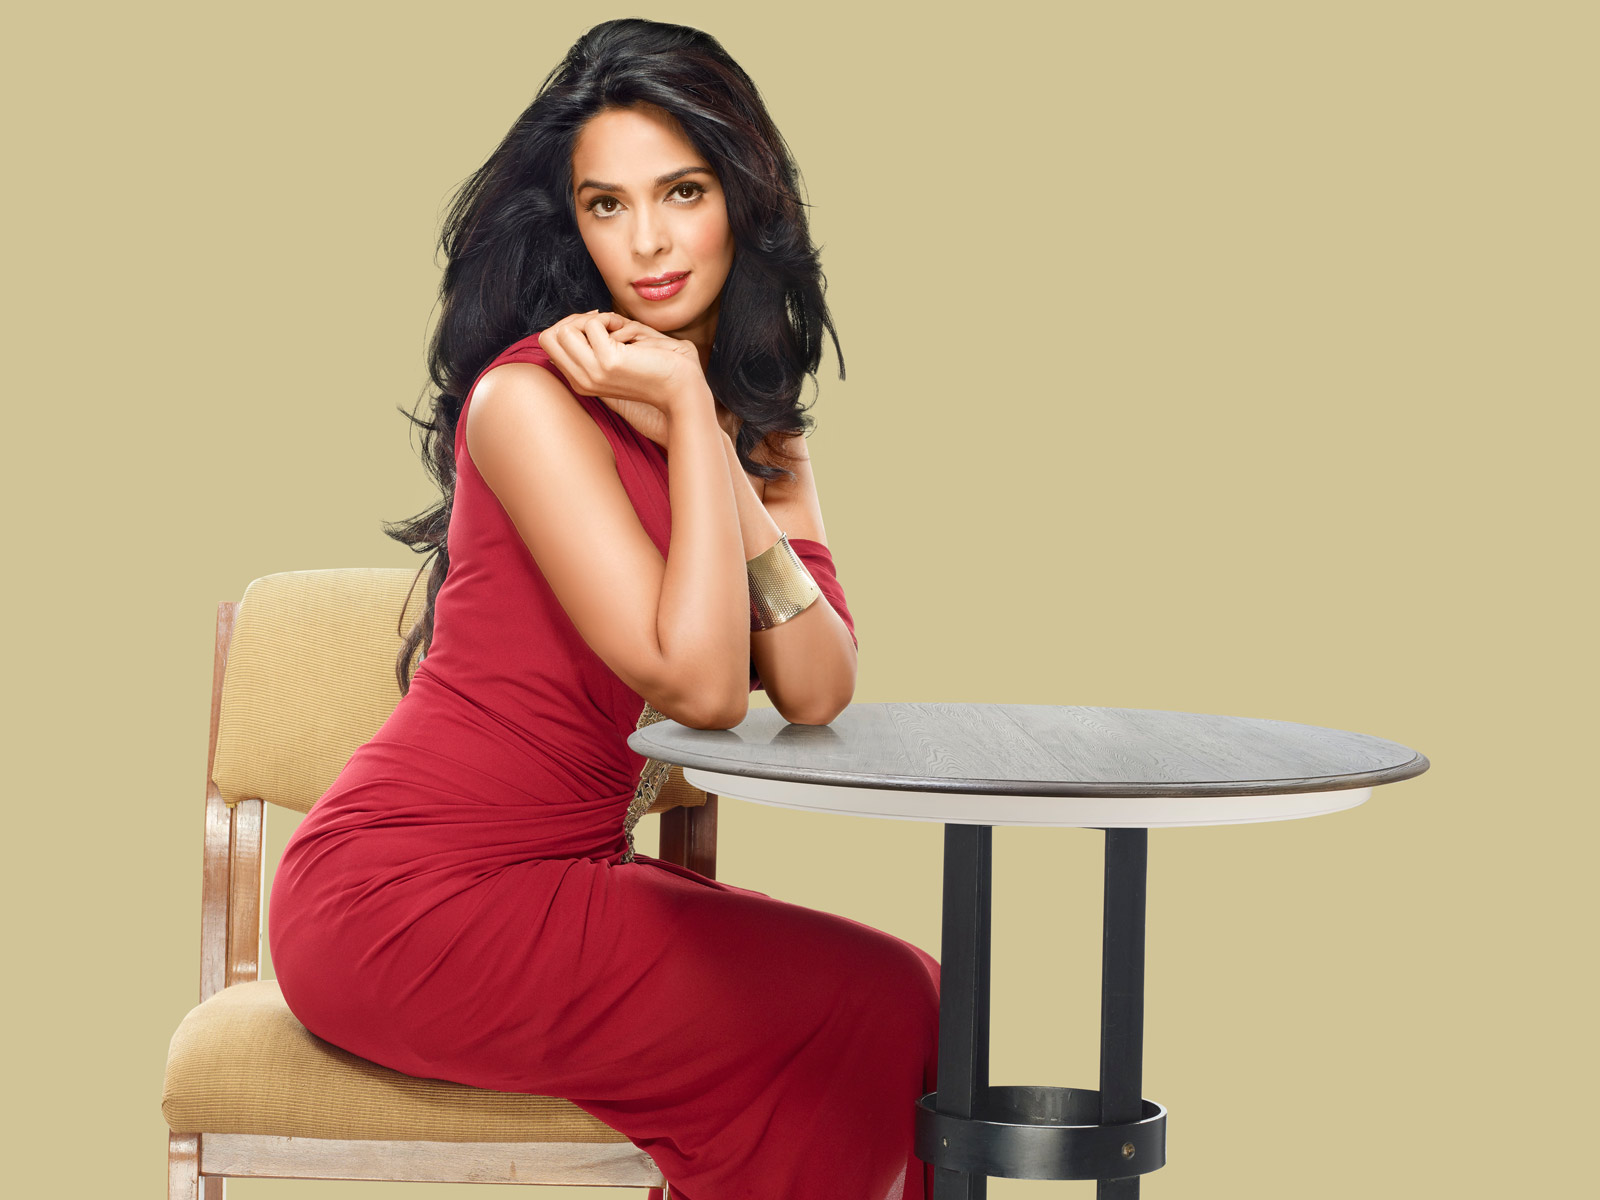 Mallika sherawat actress red dress wallpaper